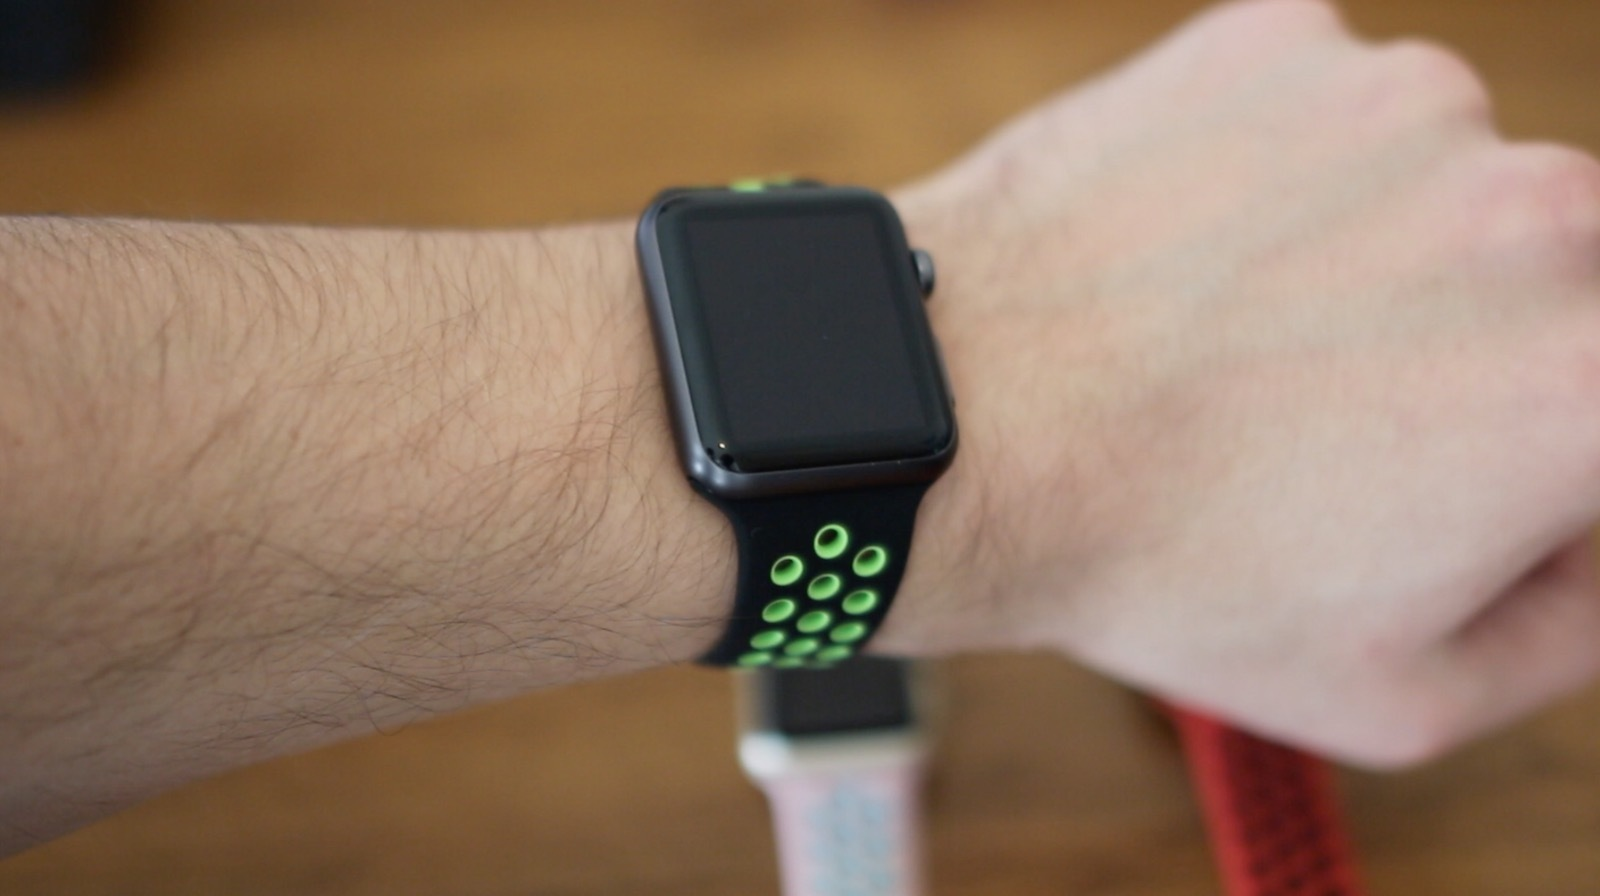 Apple Watch sports nike band